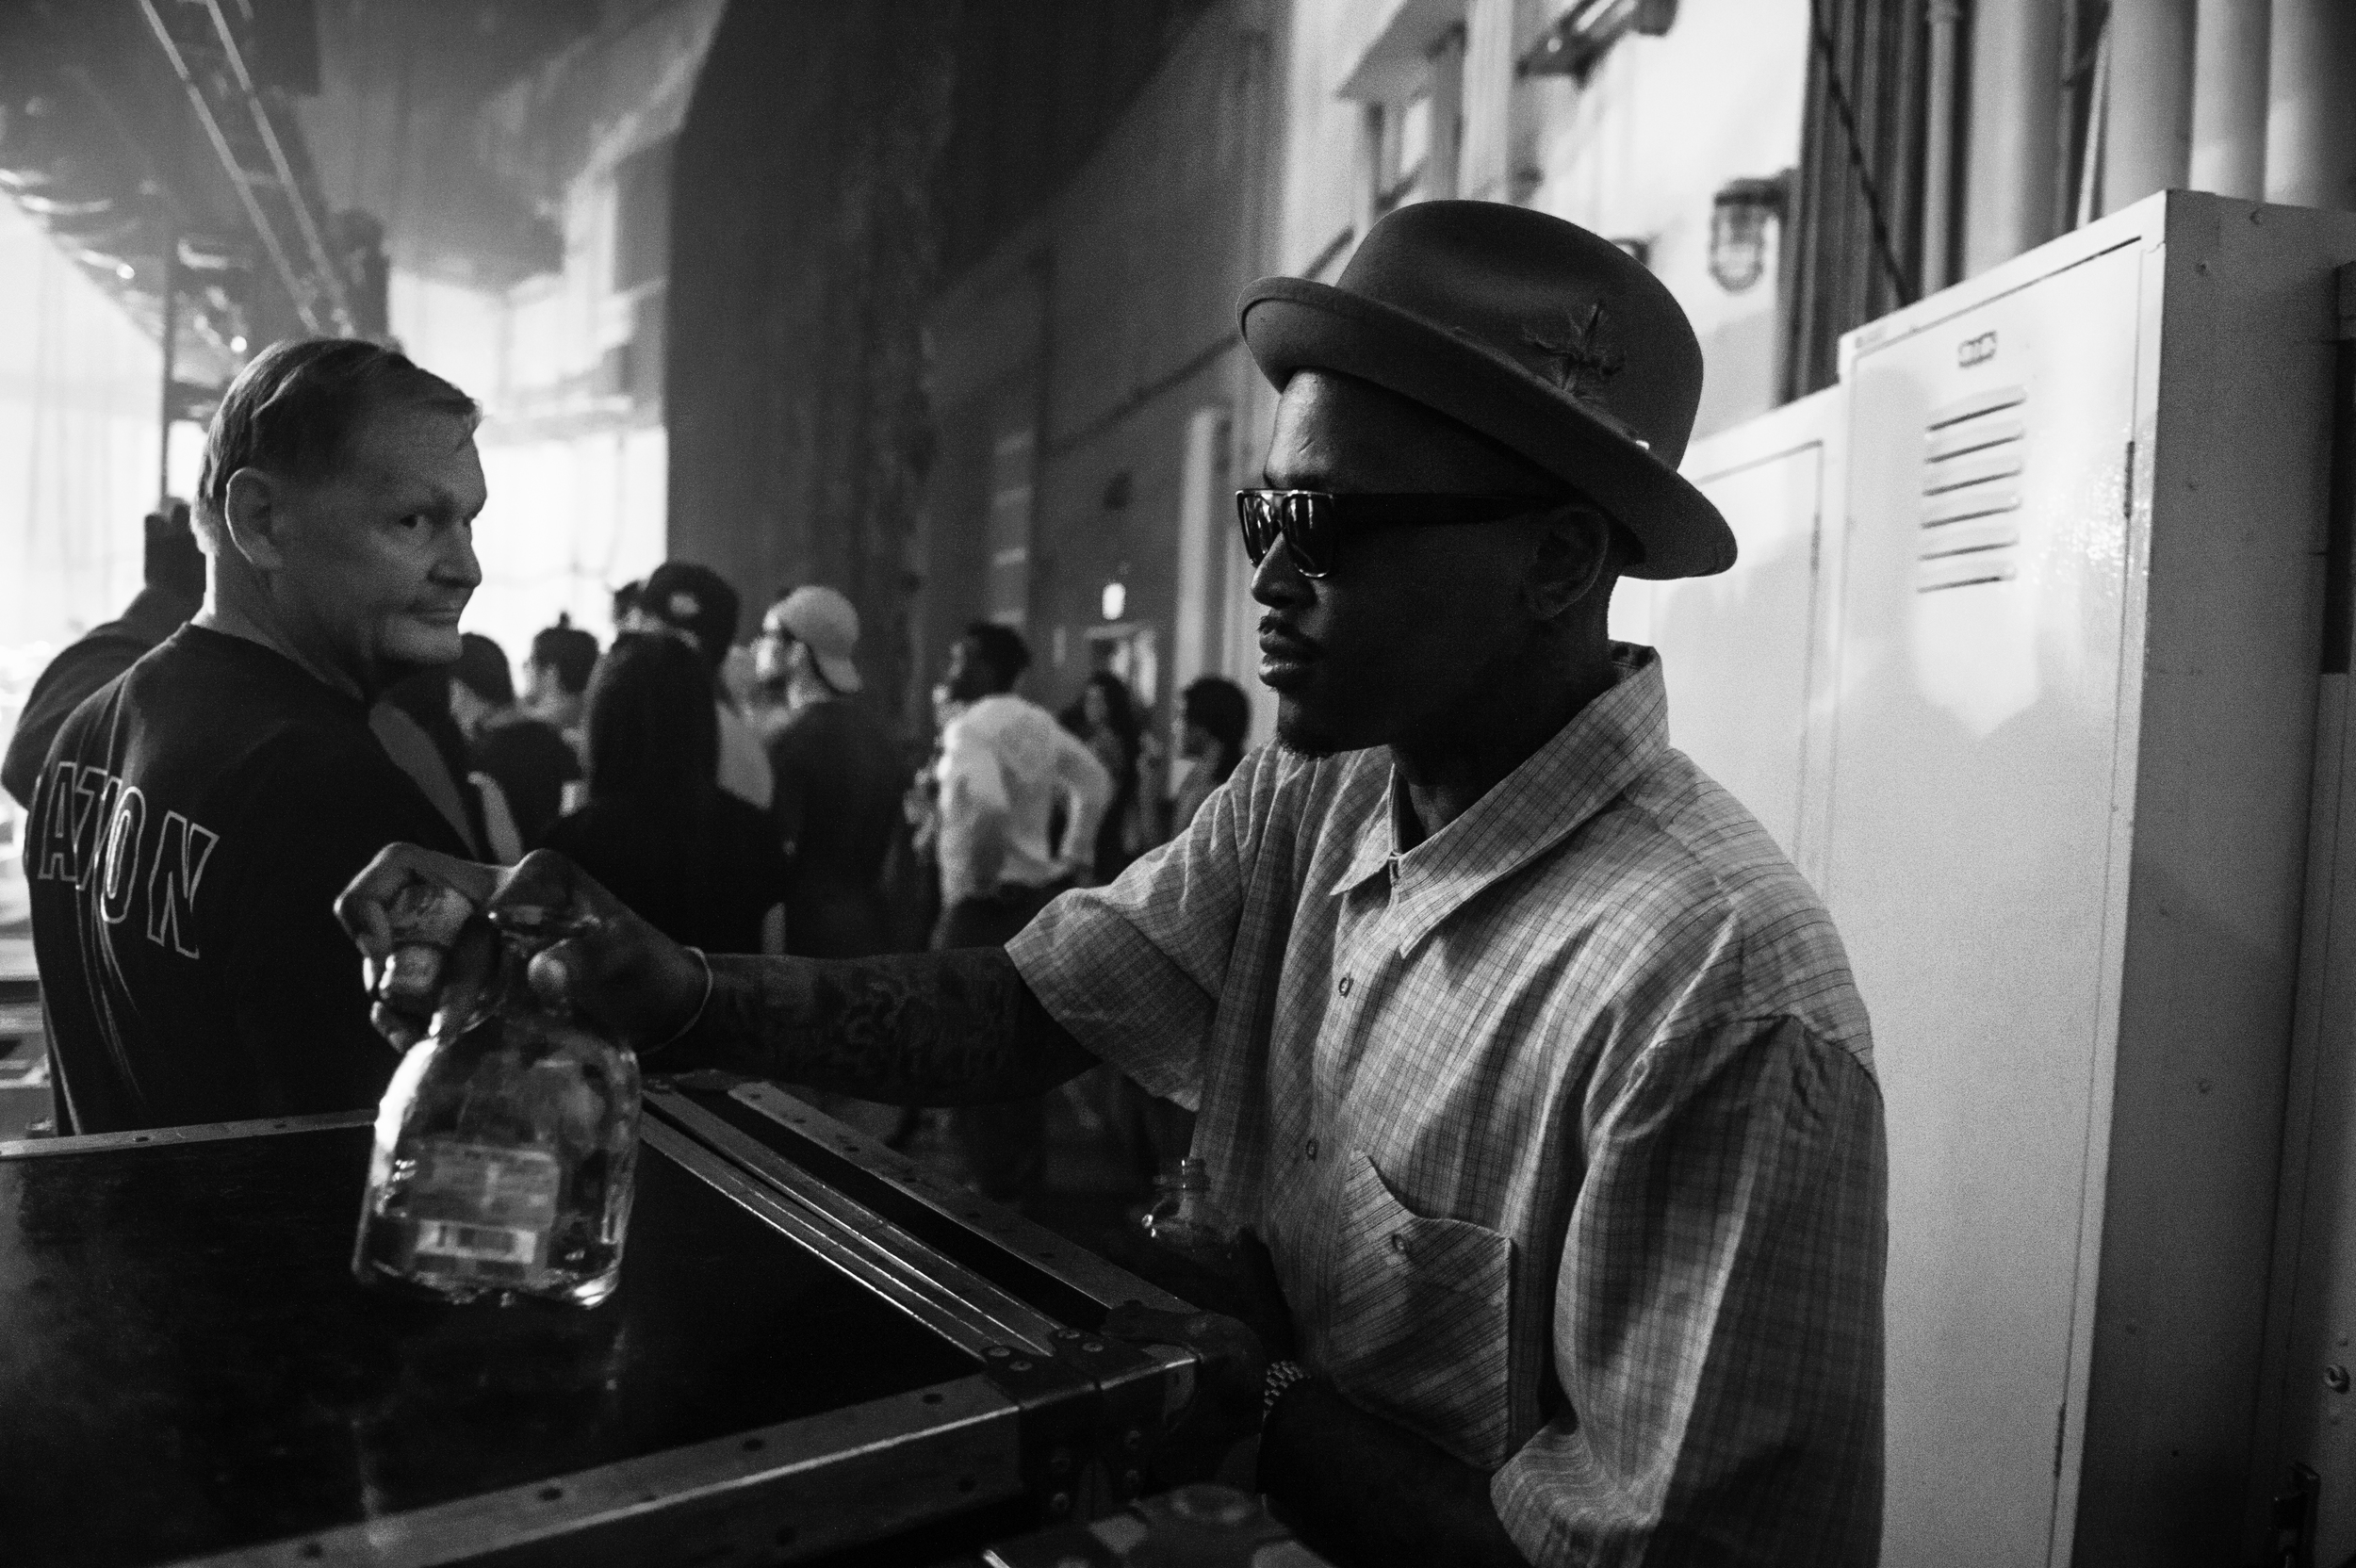 YG pouring up backstage